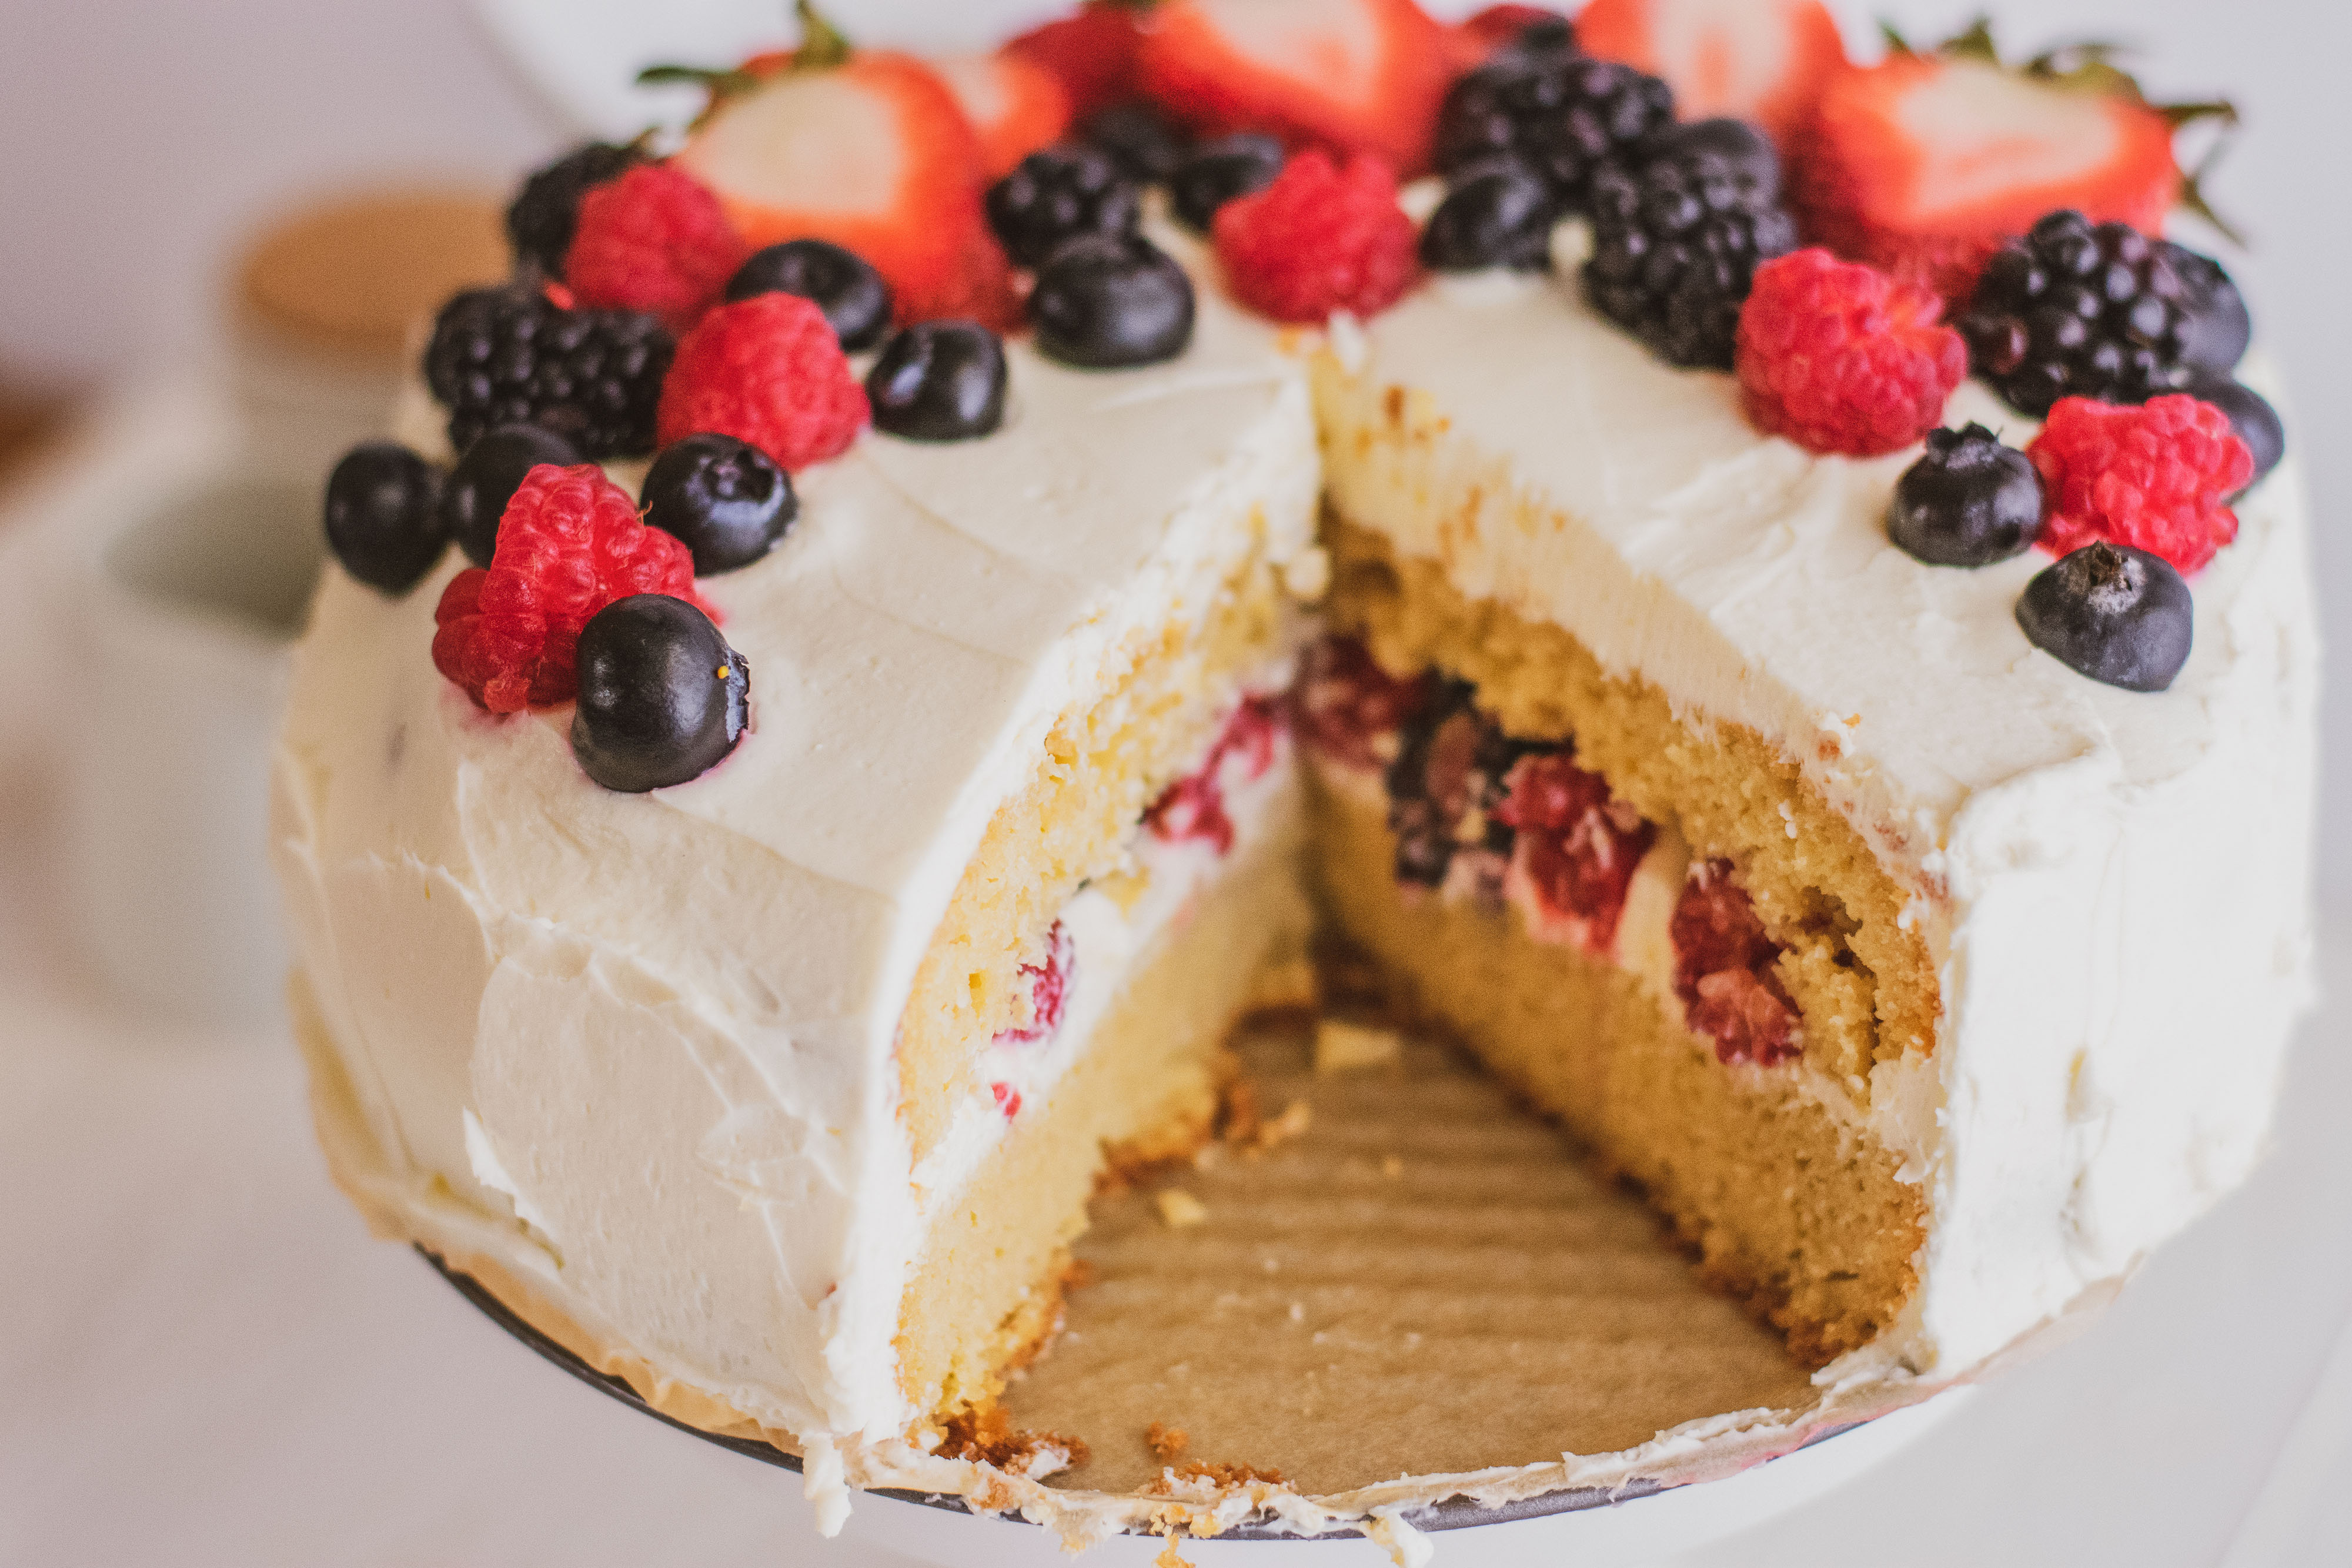 Keto Chantilly Cake a white cake with berries covering the top on a cake stand with a white background and slices taken out of the cake